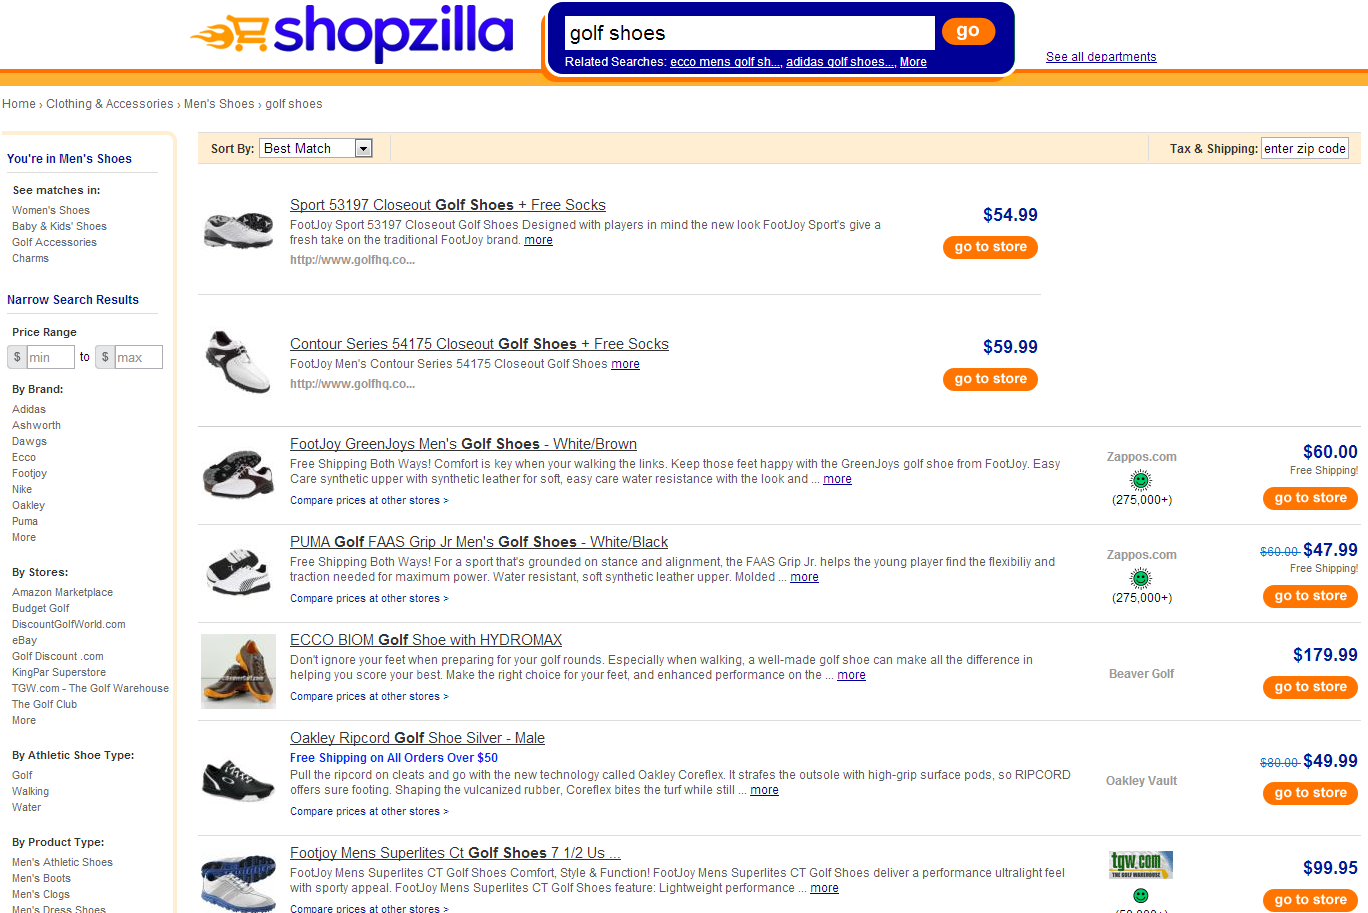 What Are the Best Comparison Shopping engines?